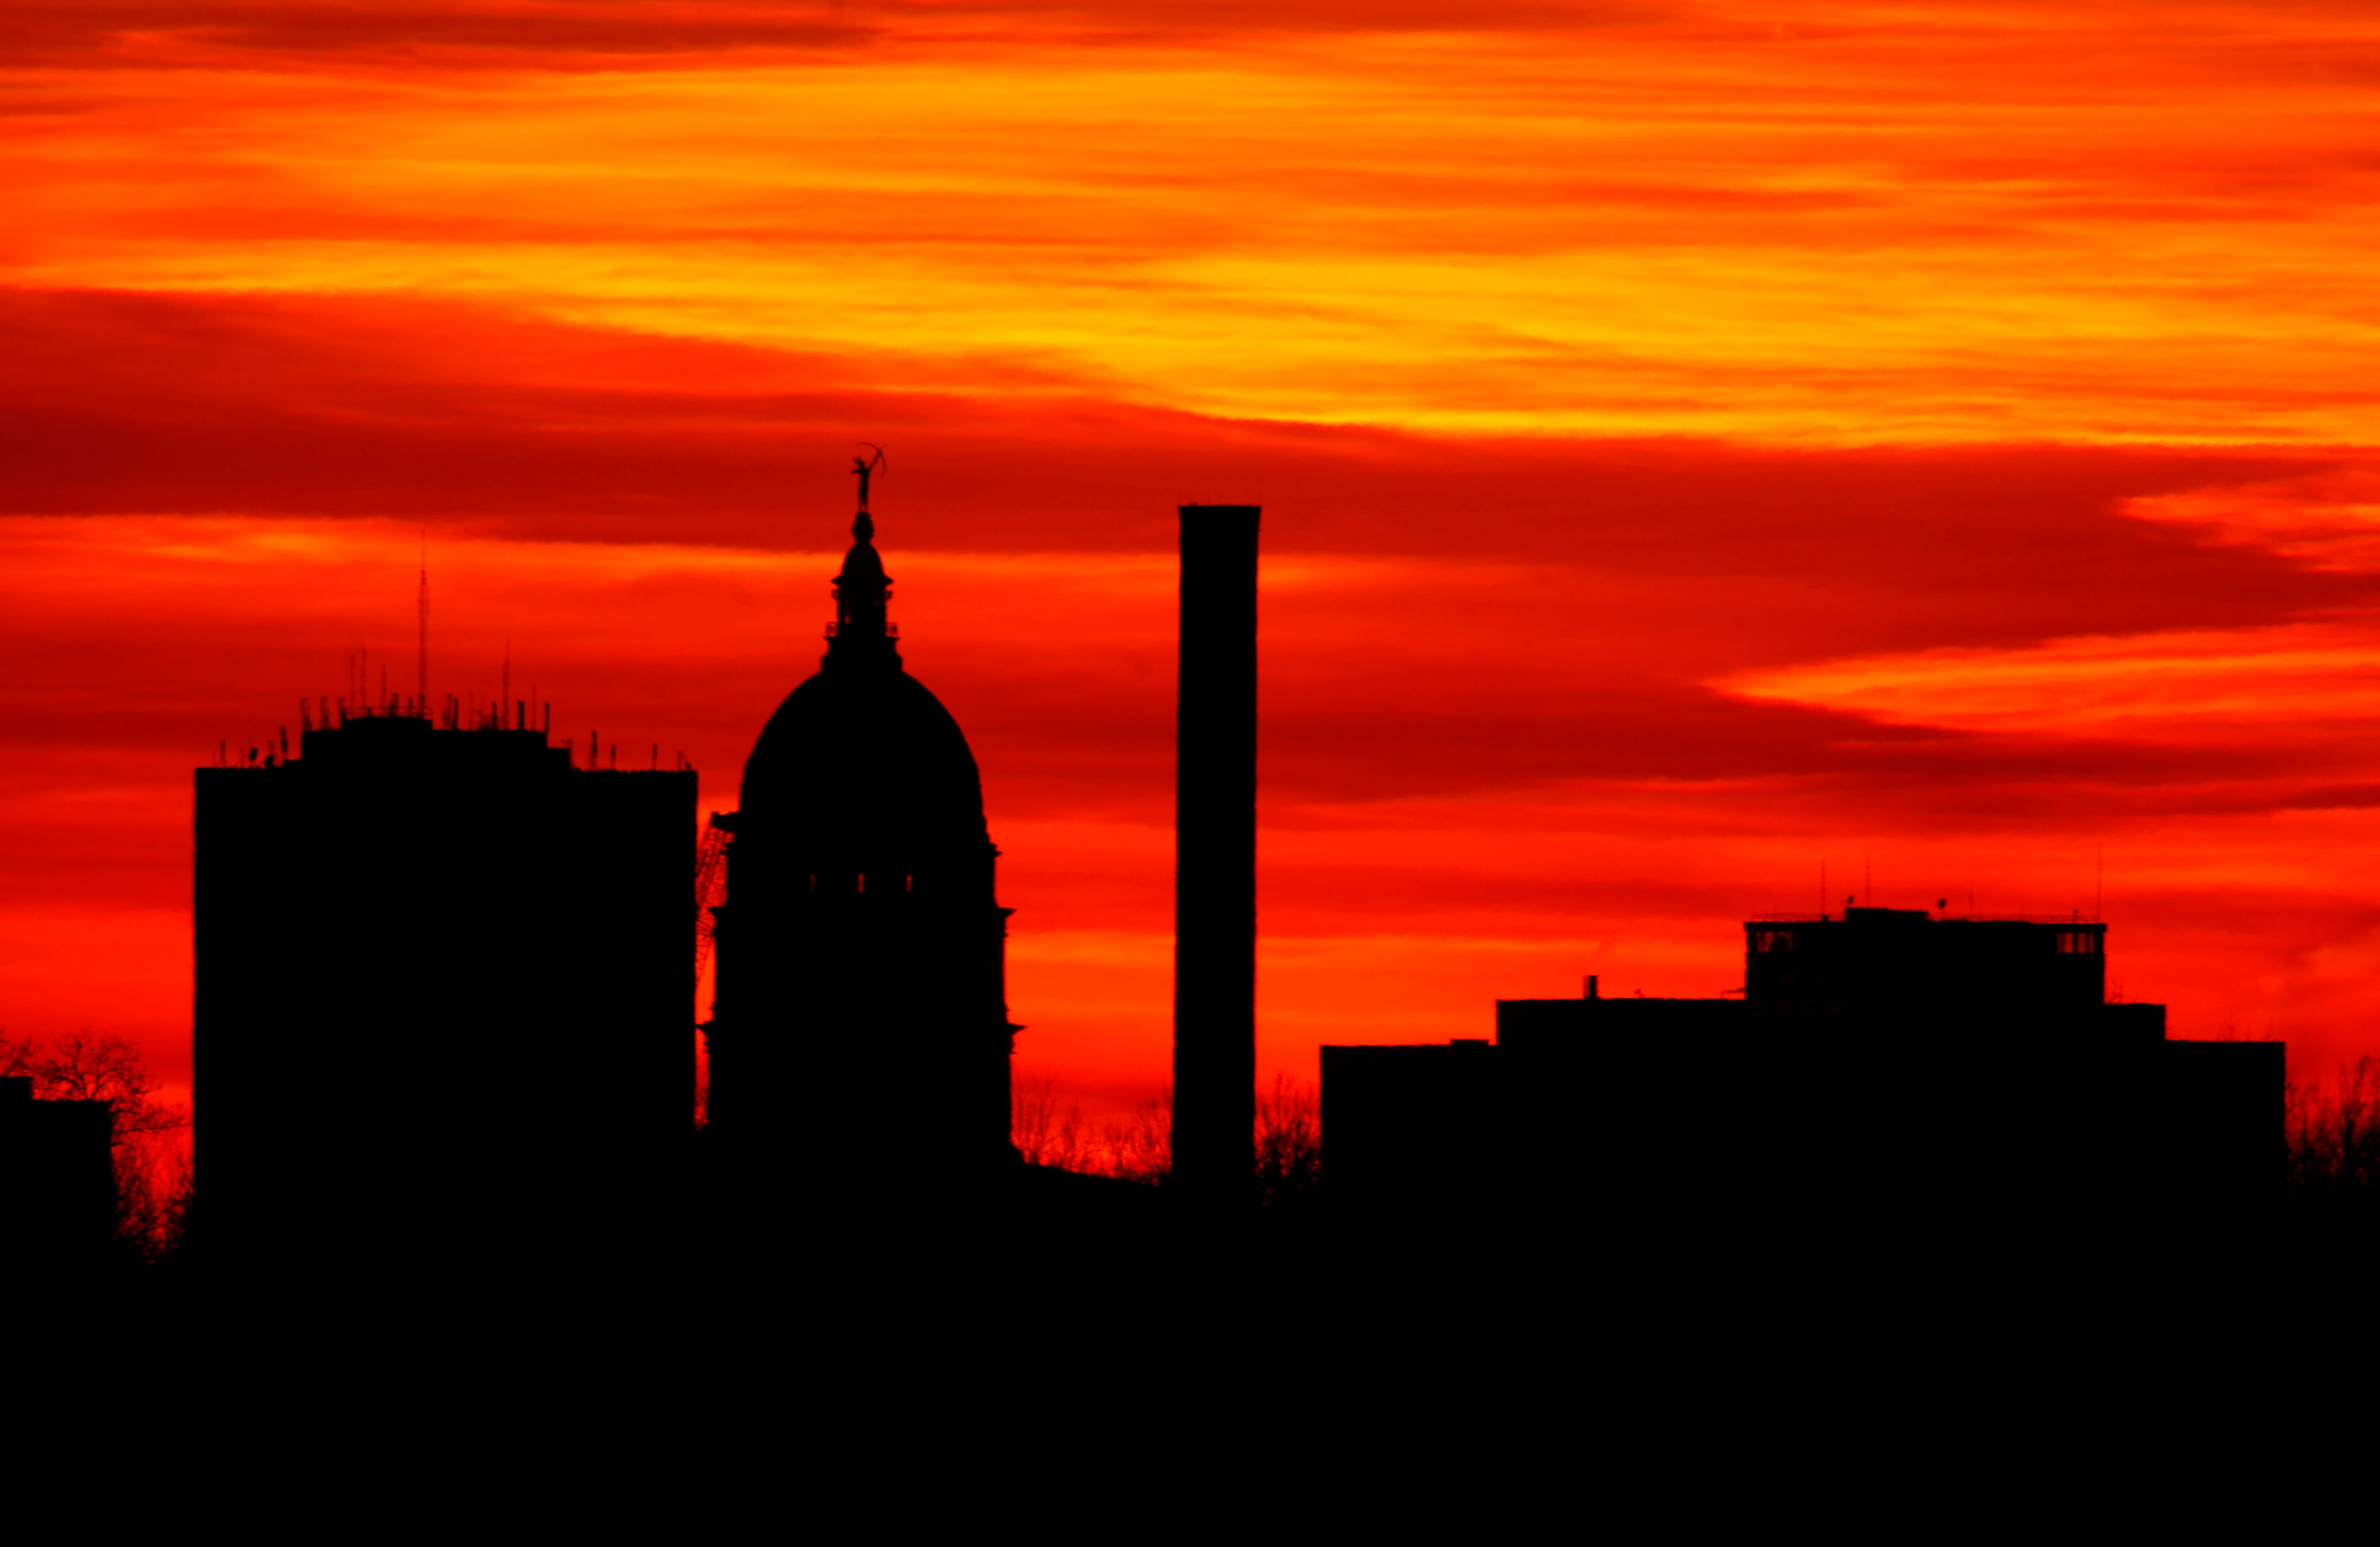 The sun sets behind the Statehouse in downtown Topeka, Kan